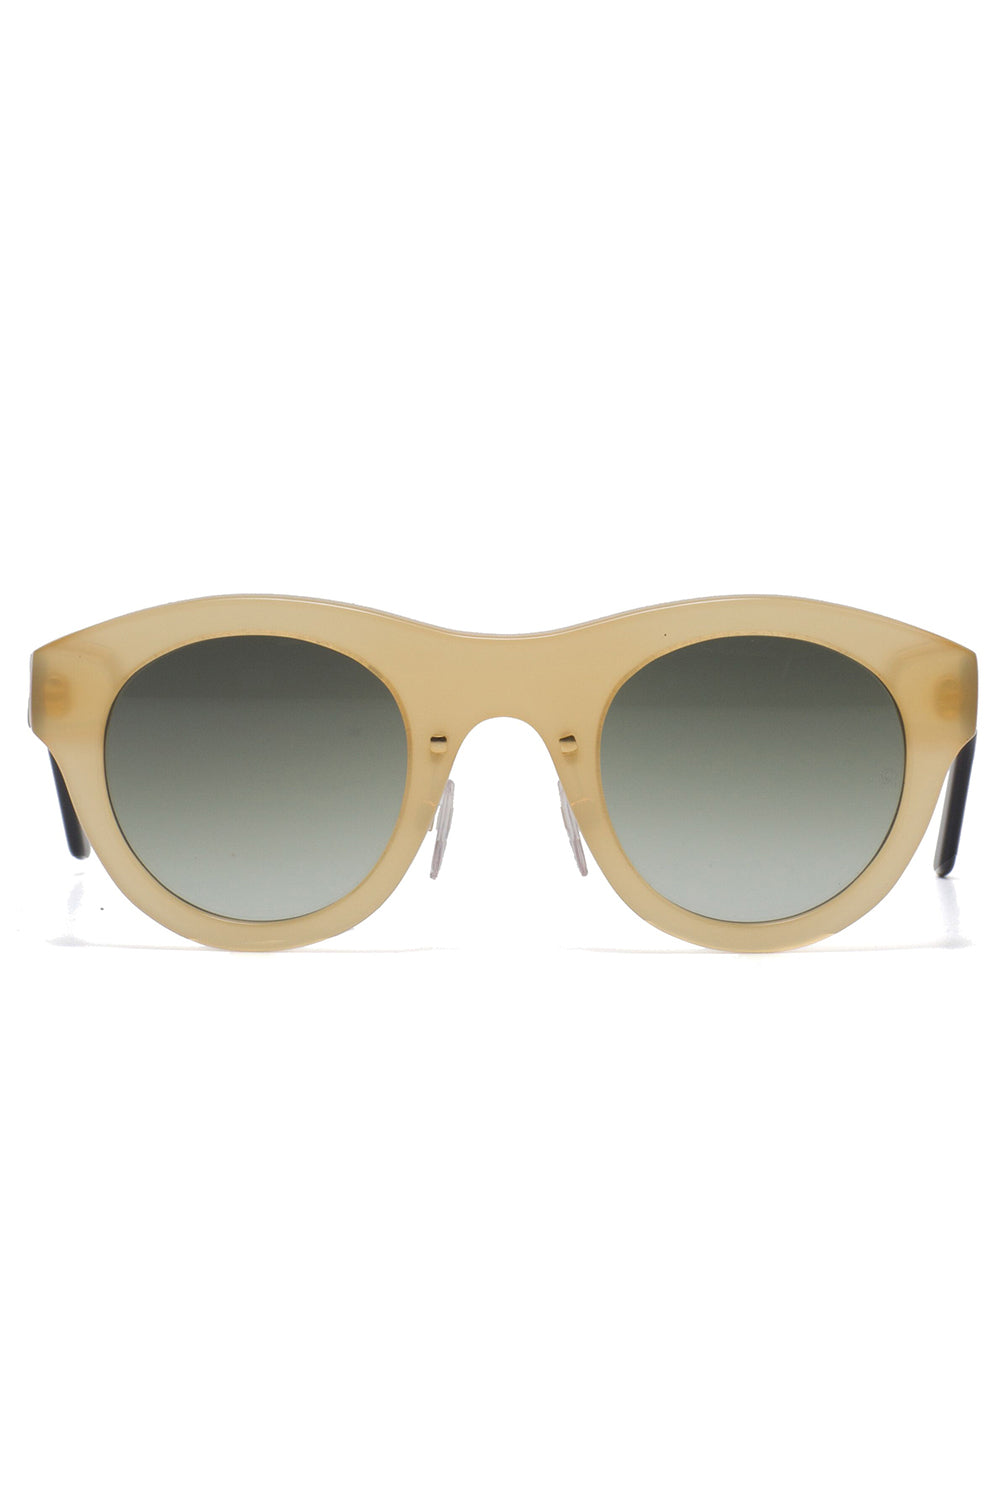 Ipanema V Sunglasses in Gold